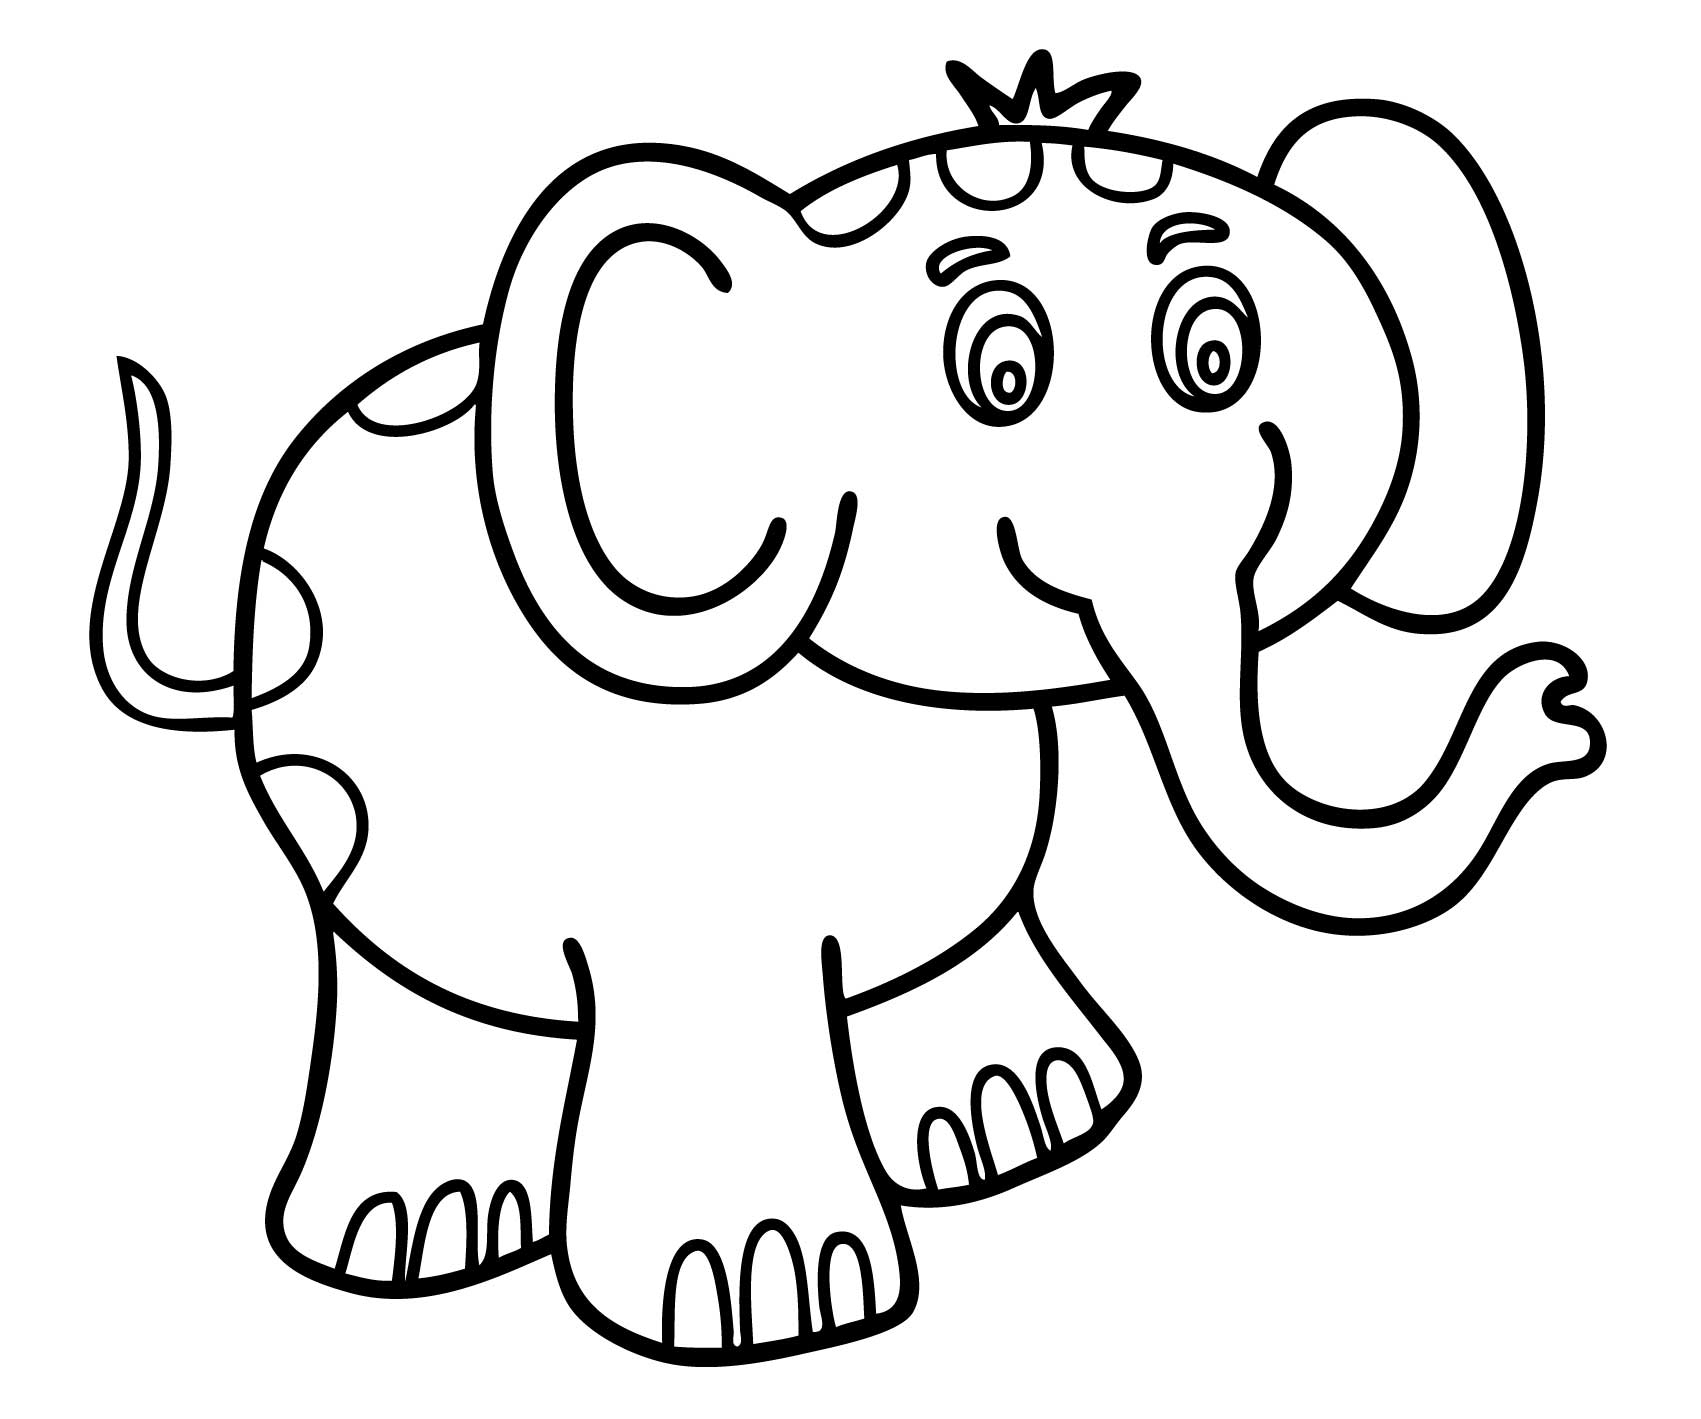 free coloring pages for toddlers - coloring pages for toddlers